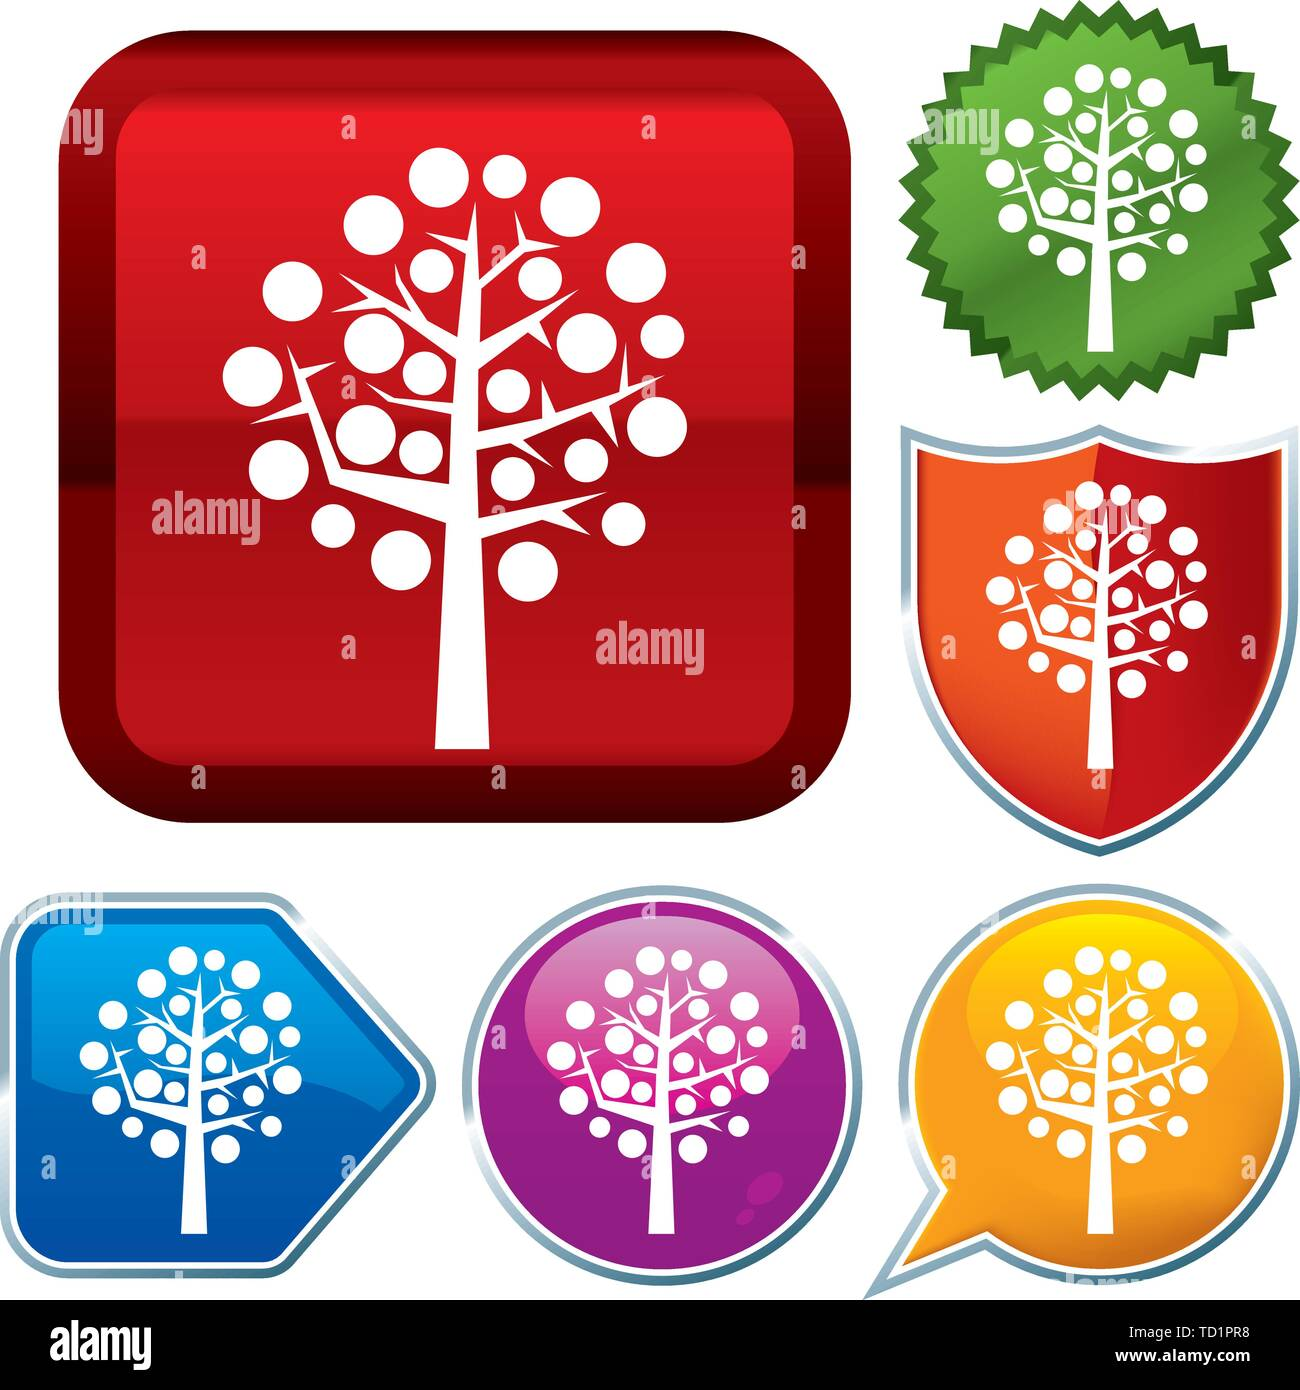 Vector illustration. Set shiny icon series on buttons. Fruit tree. - Stock Vector